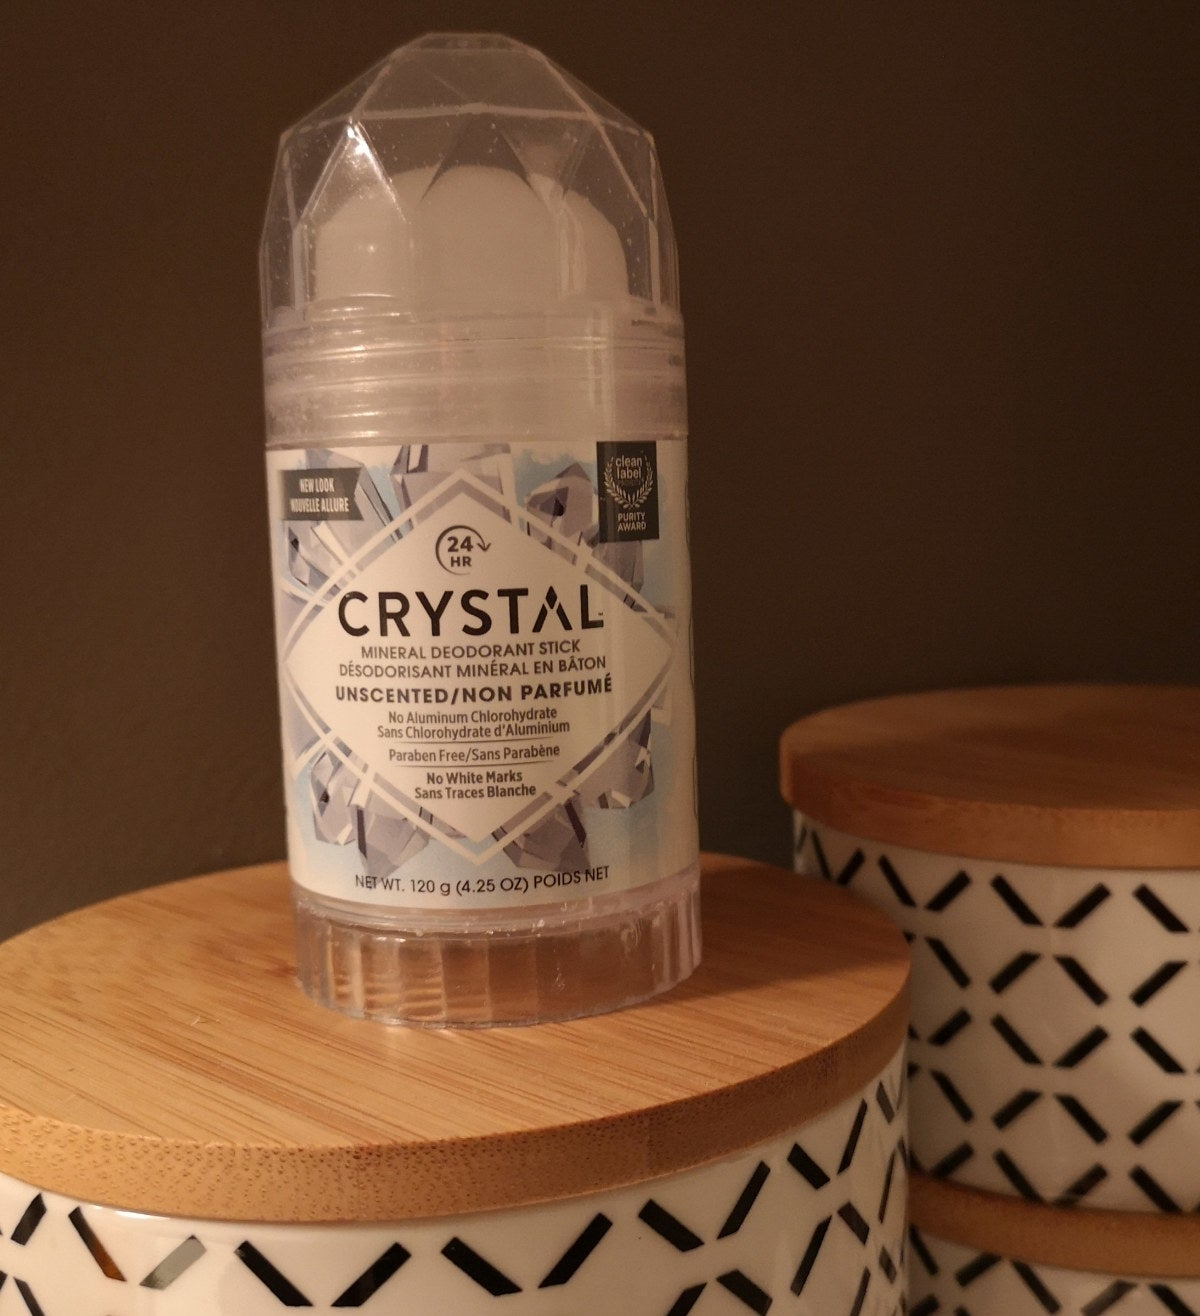 A crystal mineral deodorant stick in unscented